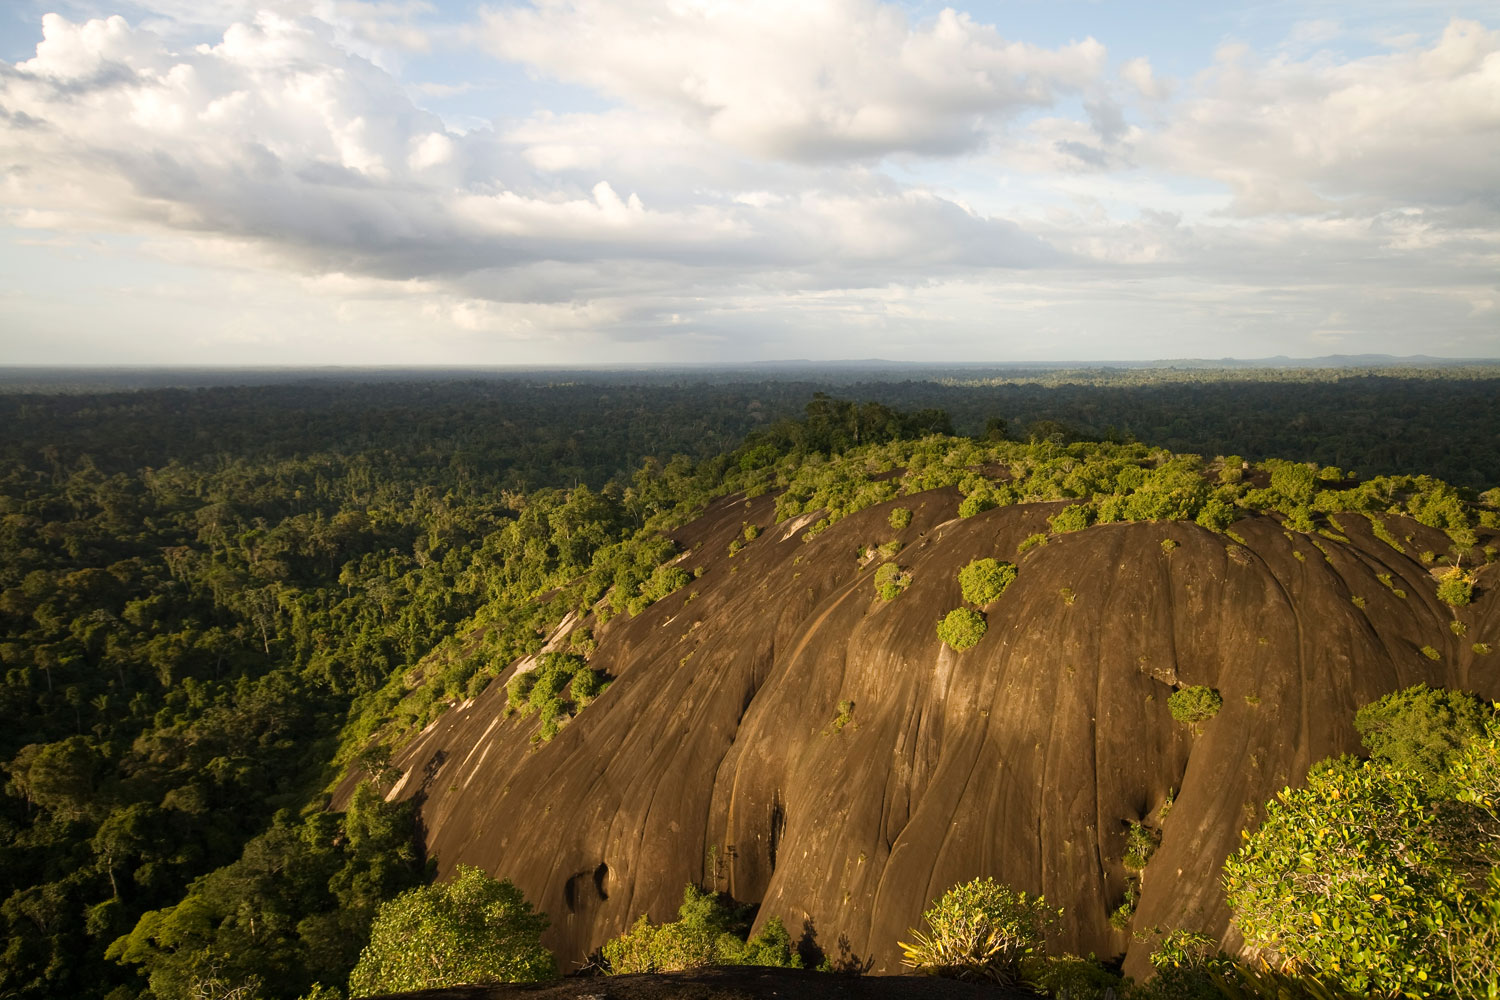 The Central Suriname Nature Reserve from the Voltzberg Dome. Photograph by Andy Isaacson